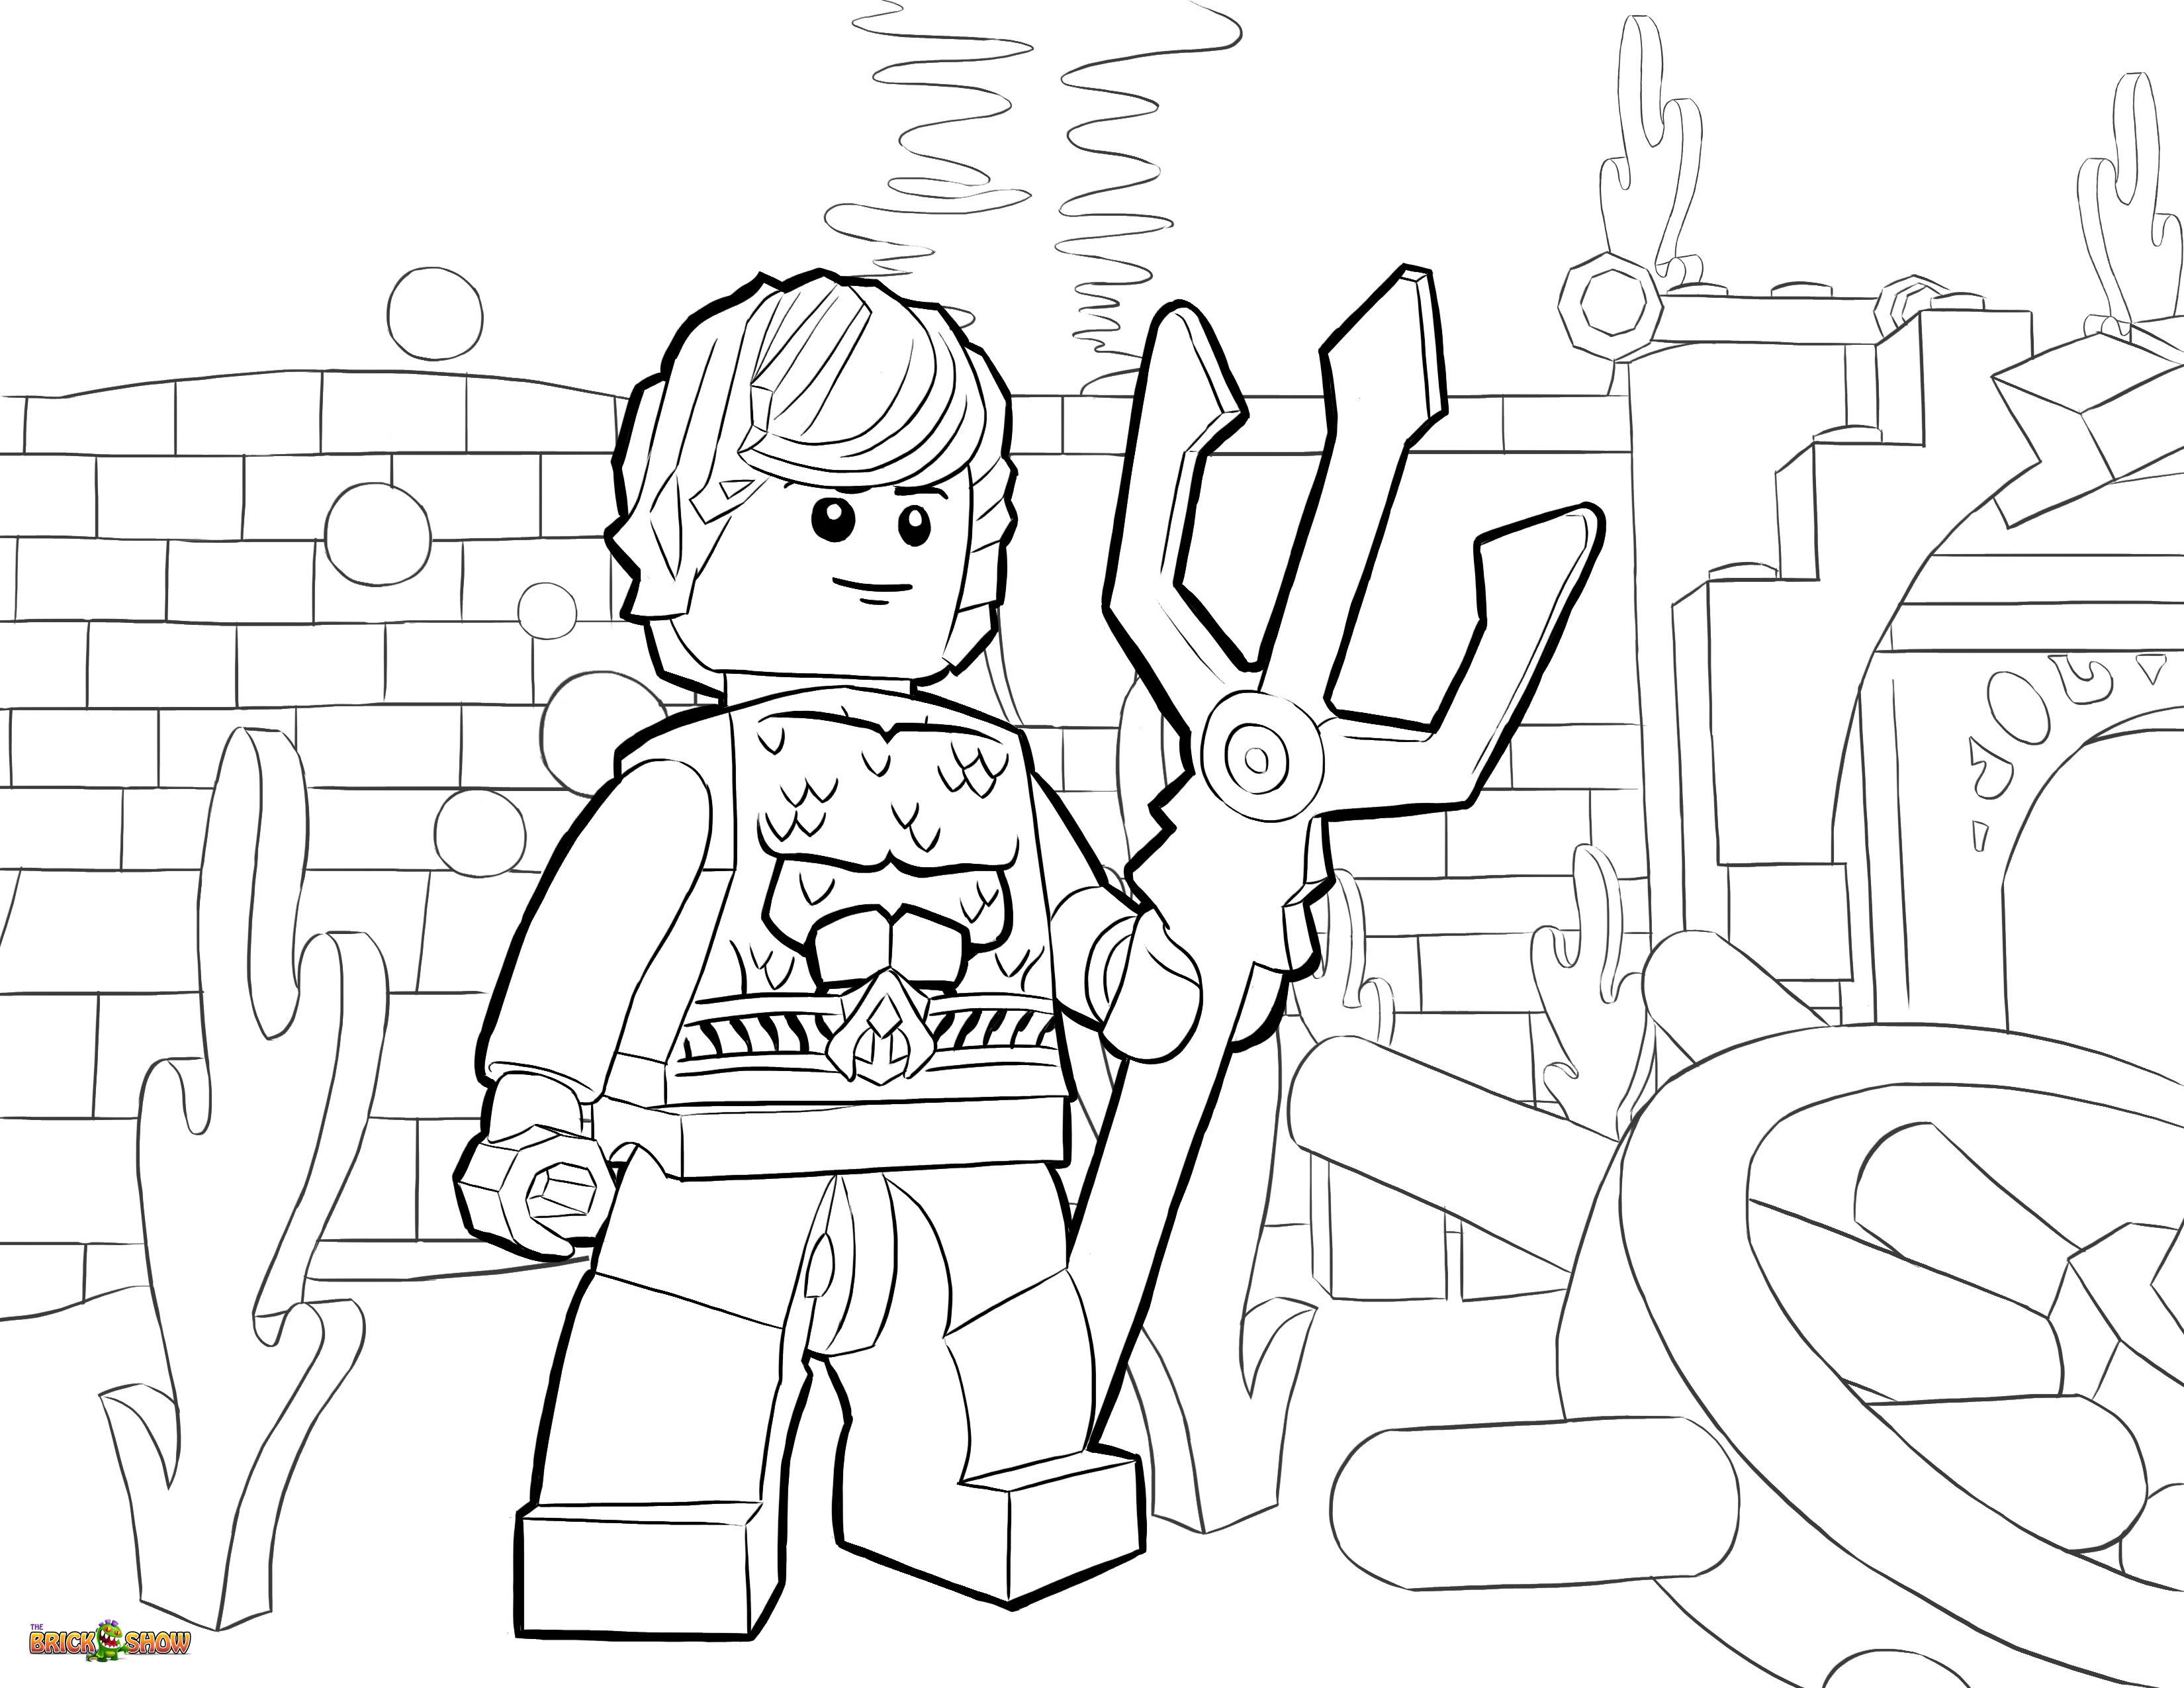 Lego Super Hero Colouring Pages - Colorine.net | #24035 | Coloring ...